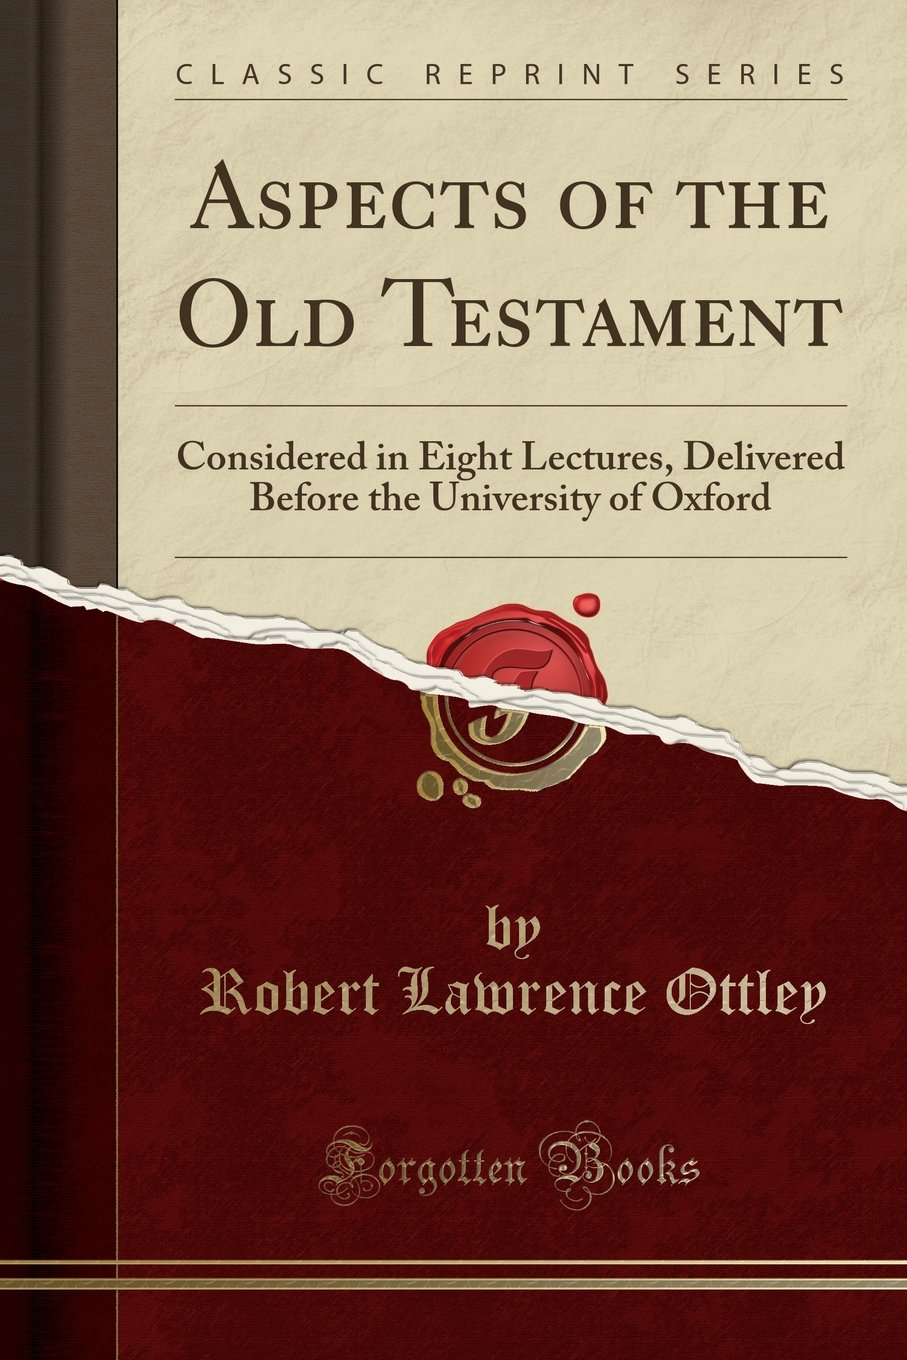 Aspects of the Old Testament: Considered in Eight Lectures, Delivered Before the University of Oxford (Classic Reprint) pdf